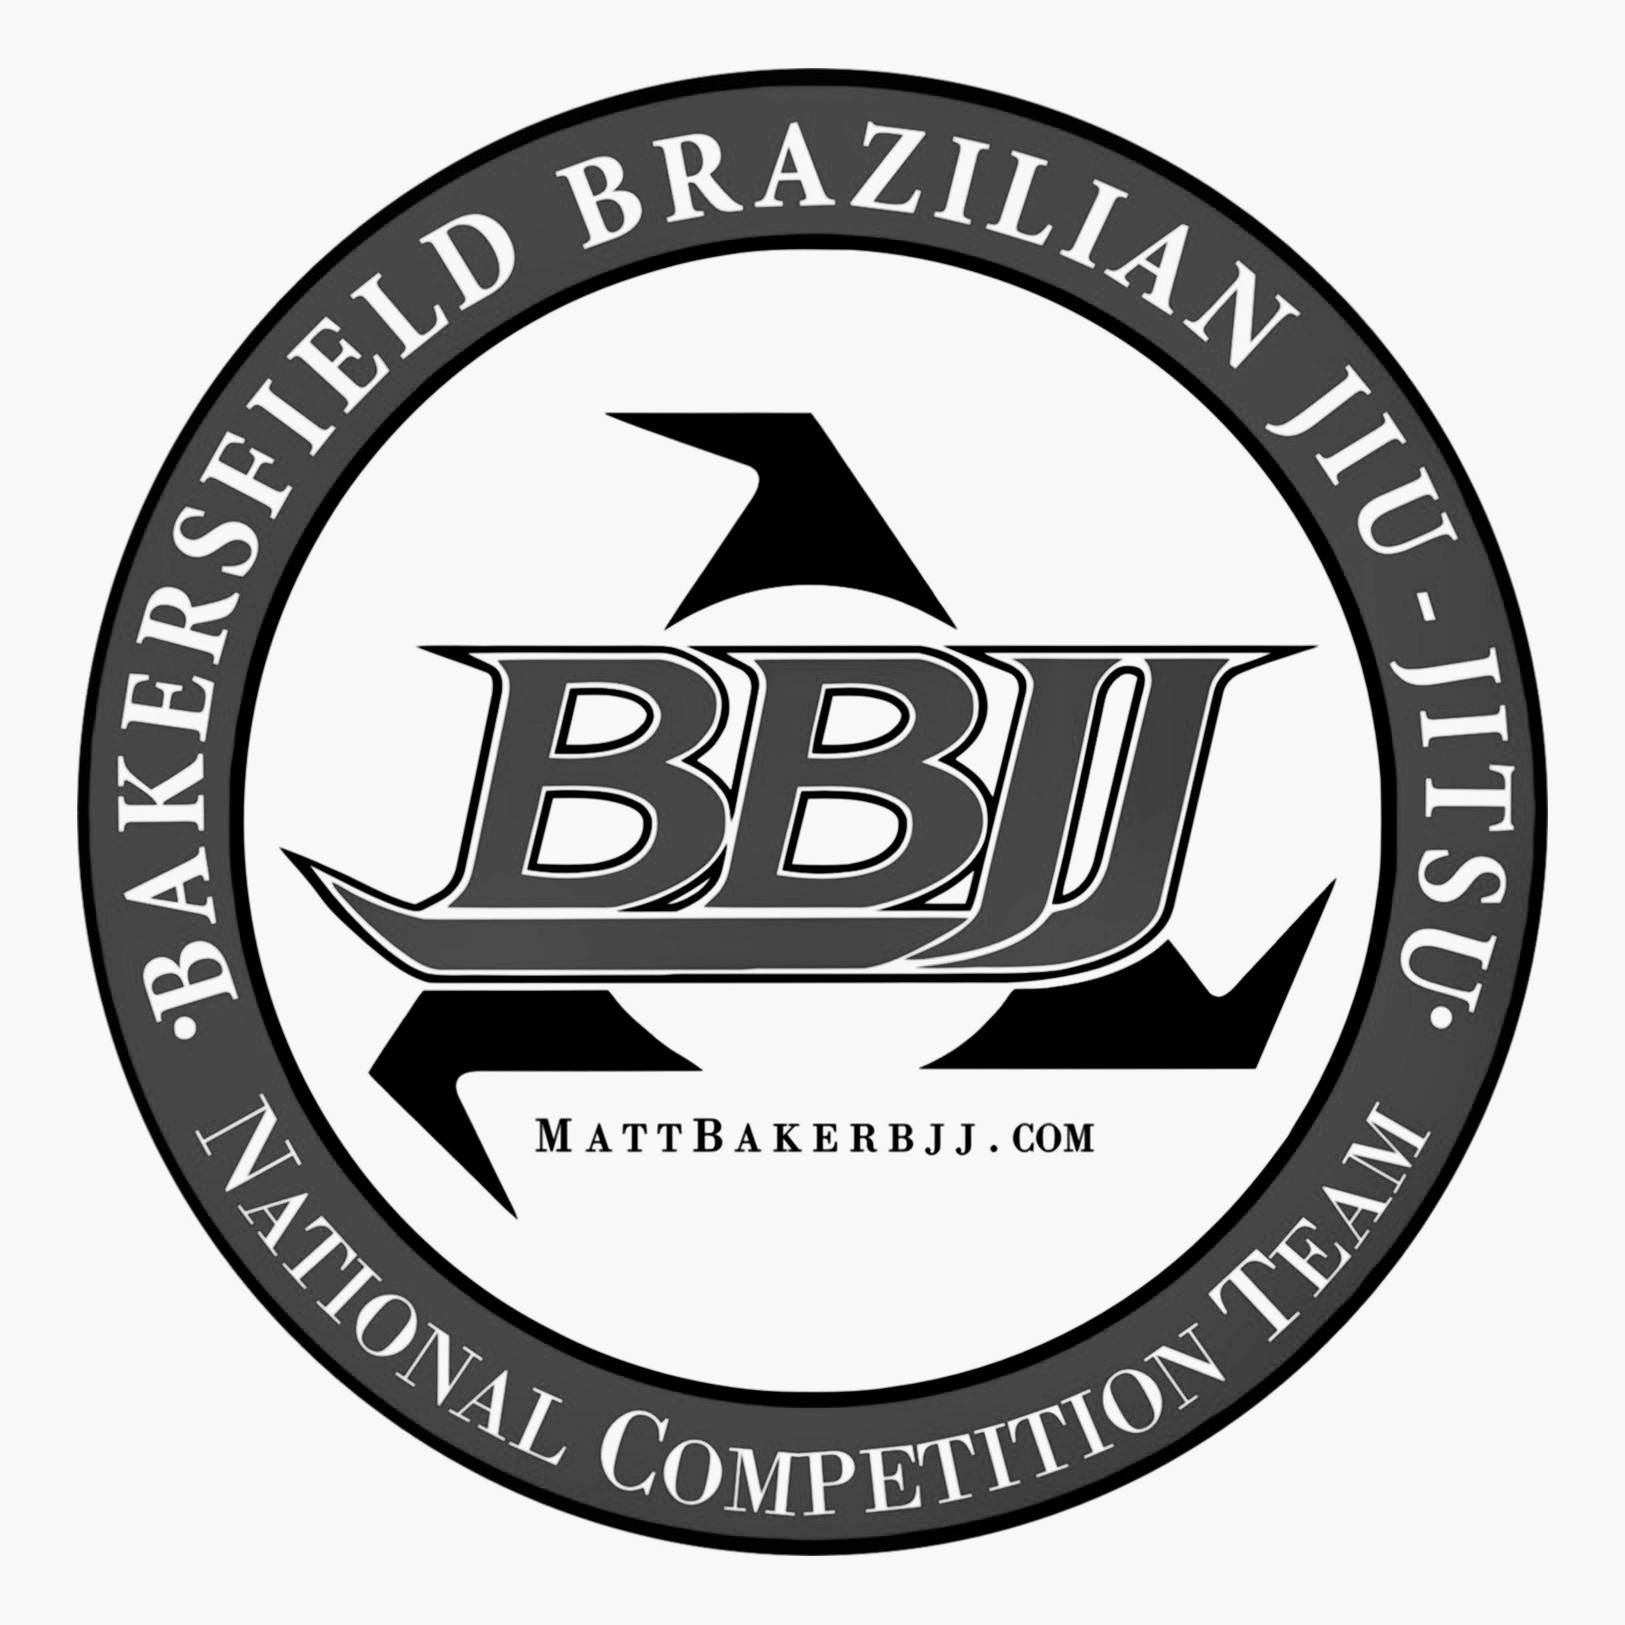 BAKERSFIELDBrazilain Jiu Jitsu - Bakersfield CaliforniaBakersfield Brazilan Jiu Jitsu, also known as BBJJ was founded in 2003 by Matt Baker. BBJJ specializes in making jiu jitsu safe and easy to learn for everybody by focusing on TRUJITSU concepts. BBJJ is where the roots of TRUJITSU began and is also referred to as TRUJITSU HQ. What to expect when you visit? A room full of training partners from all skill levels willing to help you learn. In almost every class there are several Black belts rolling and assisting students.